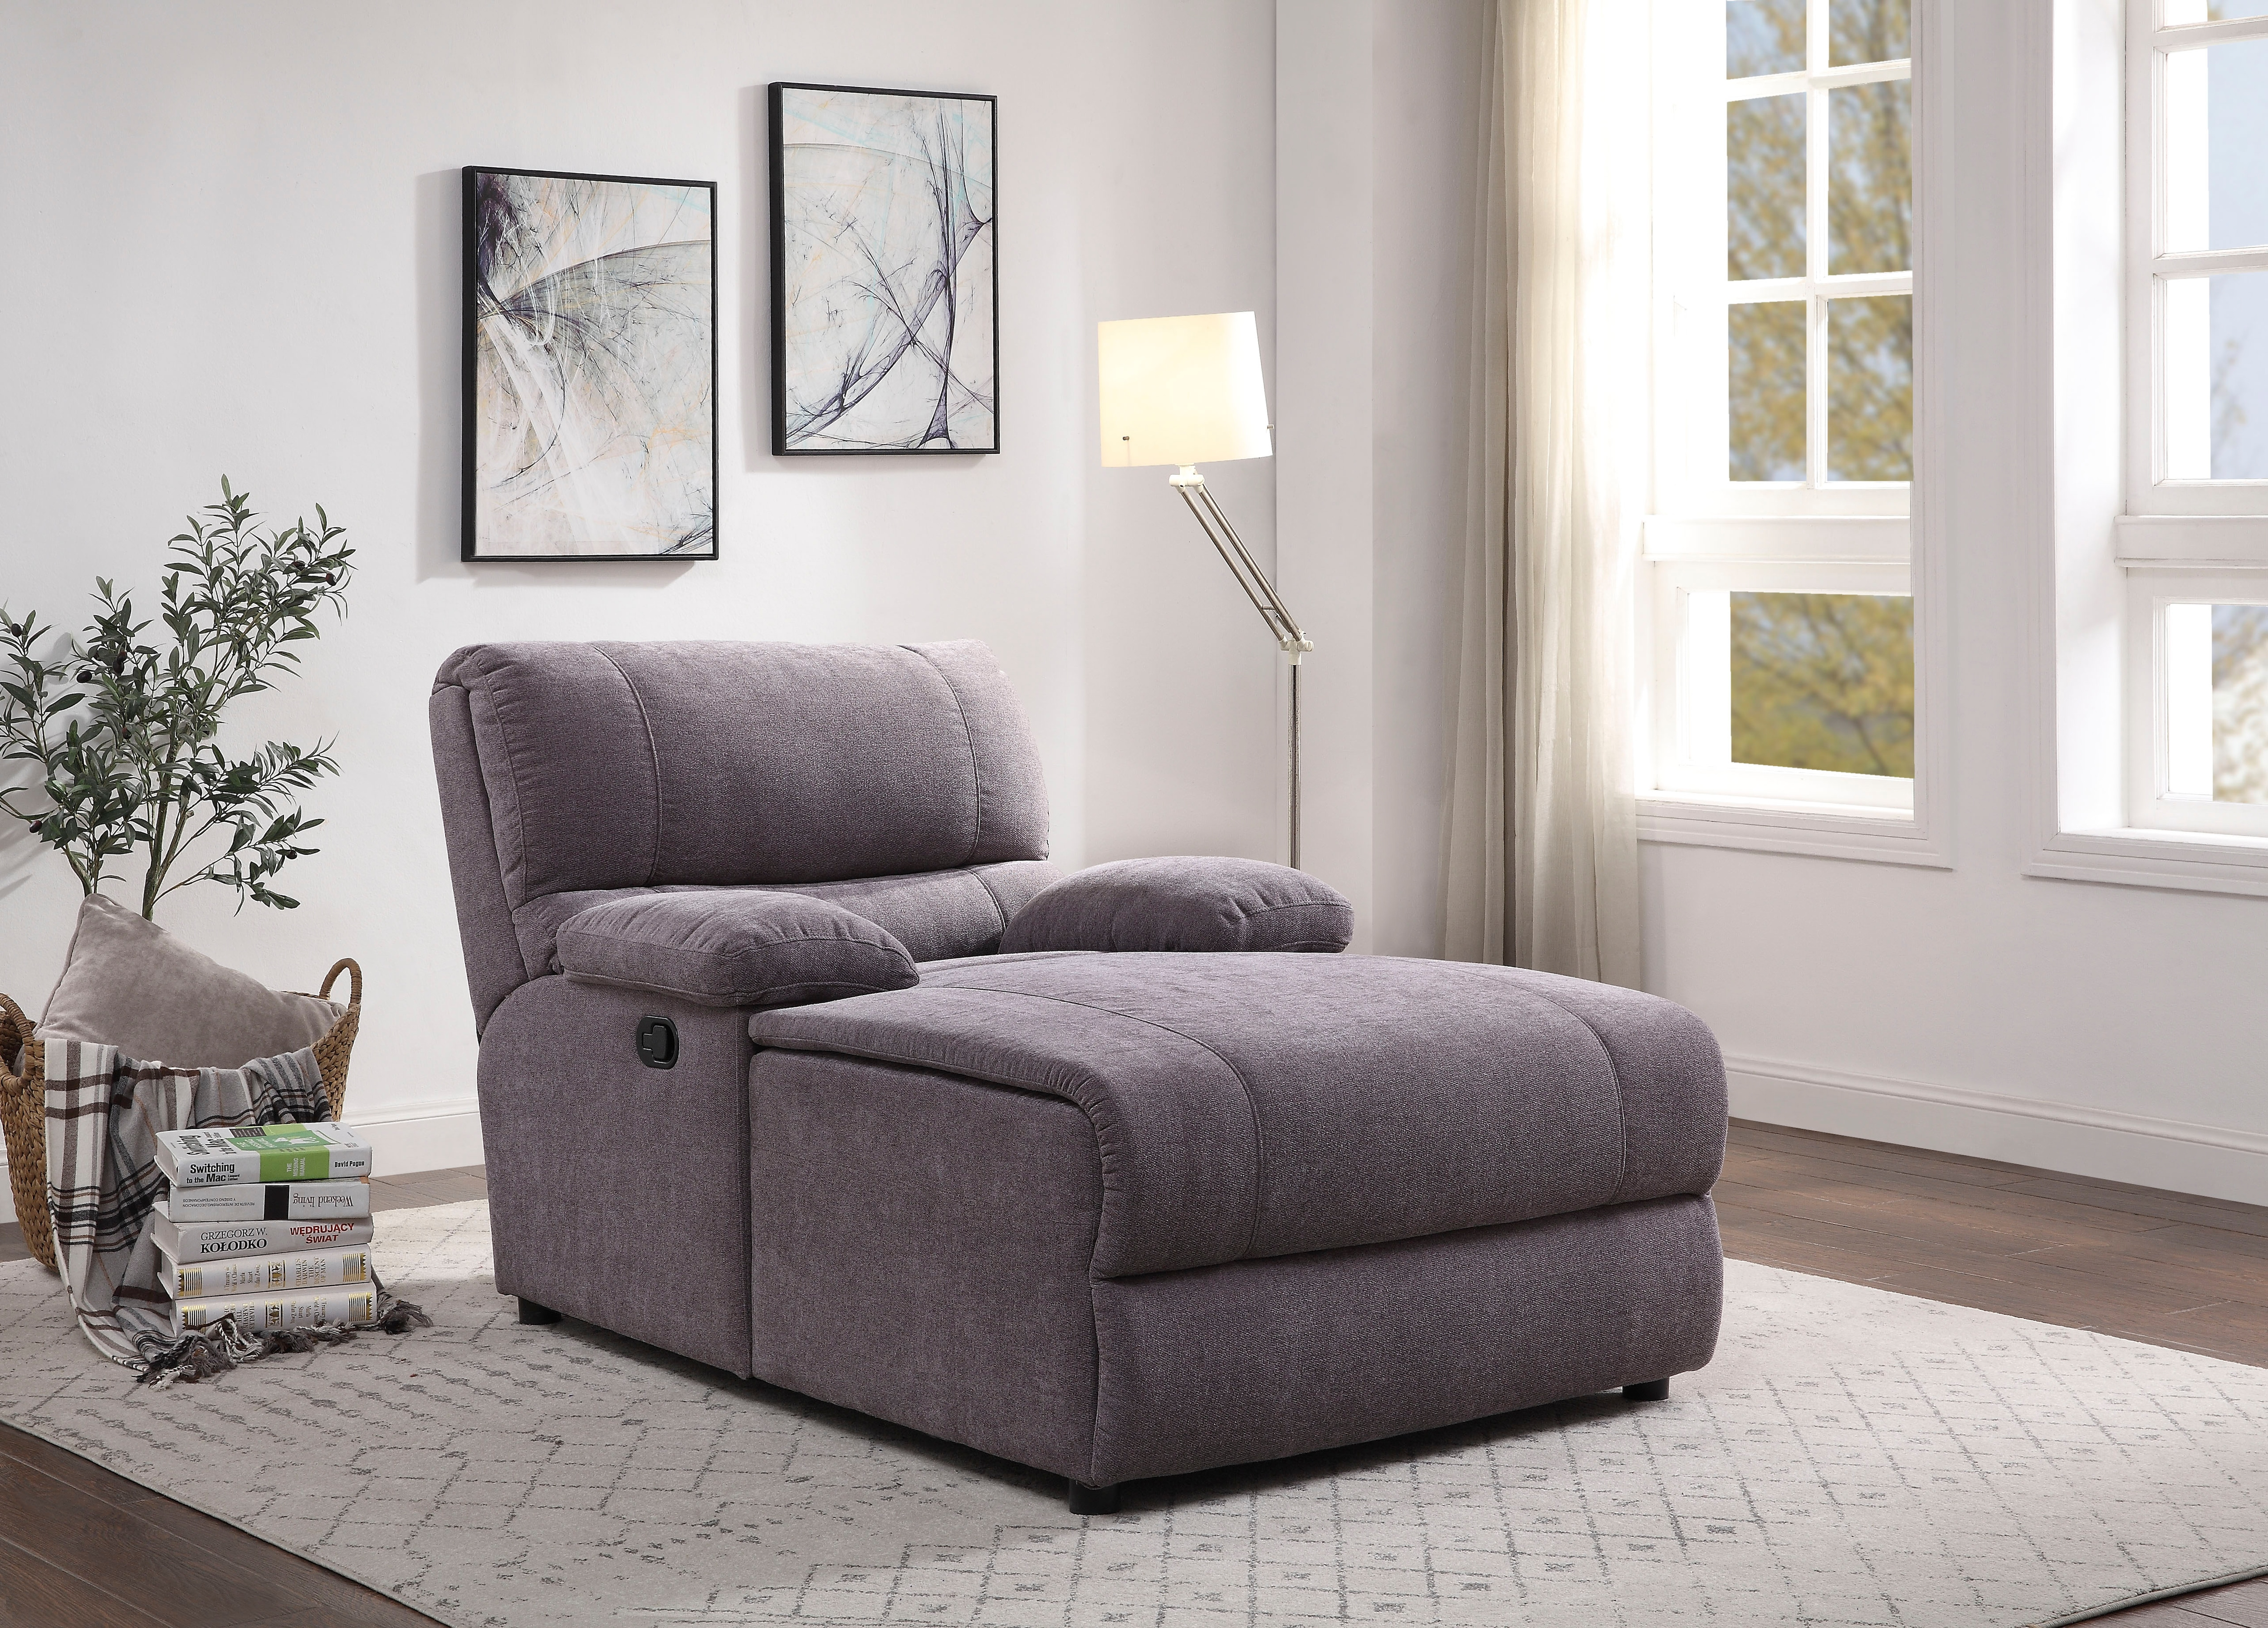 ATLANTIC home collection Loveseat